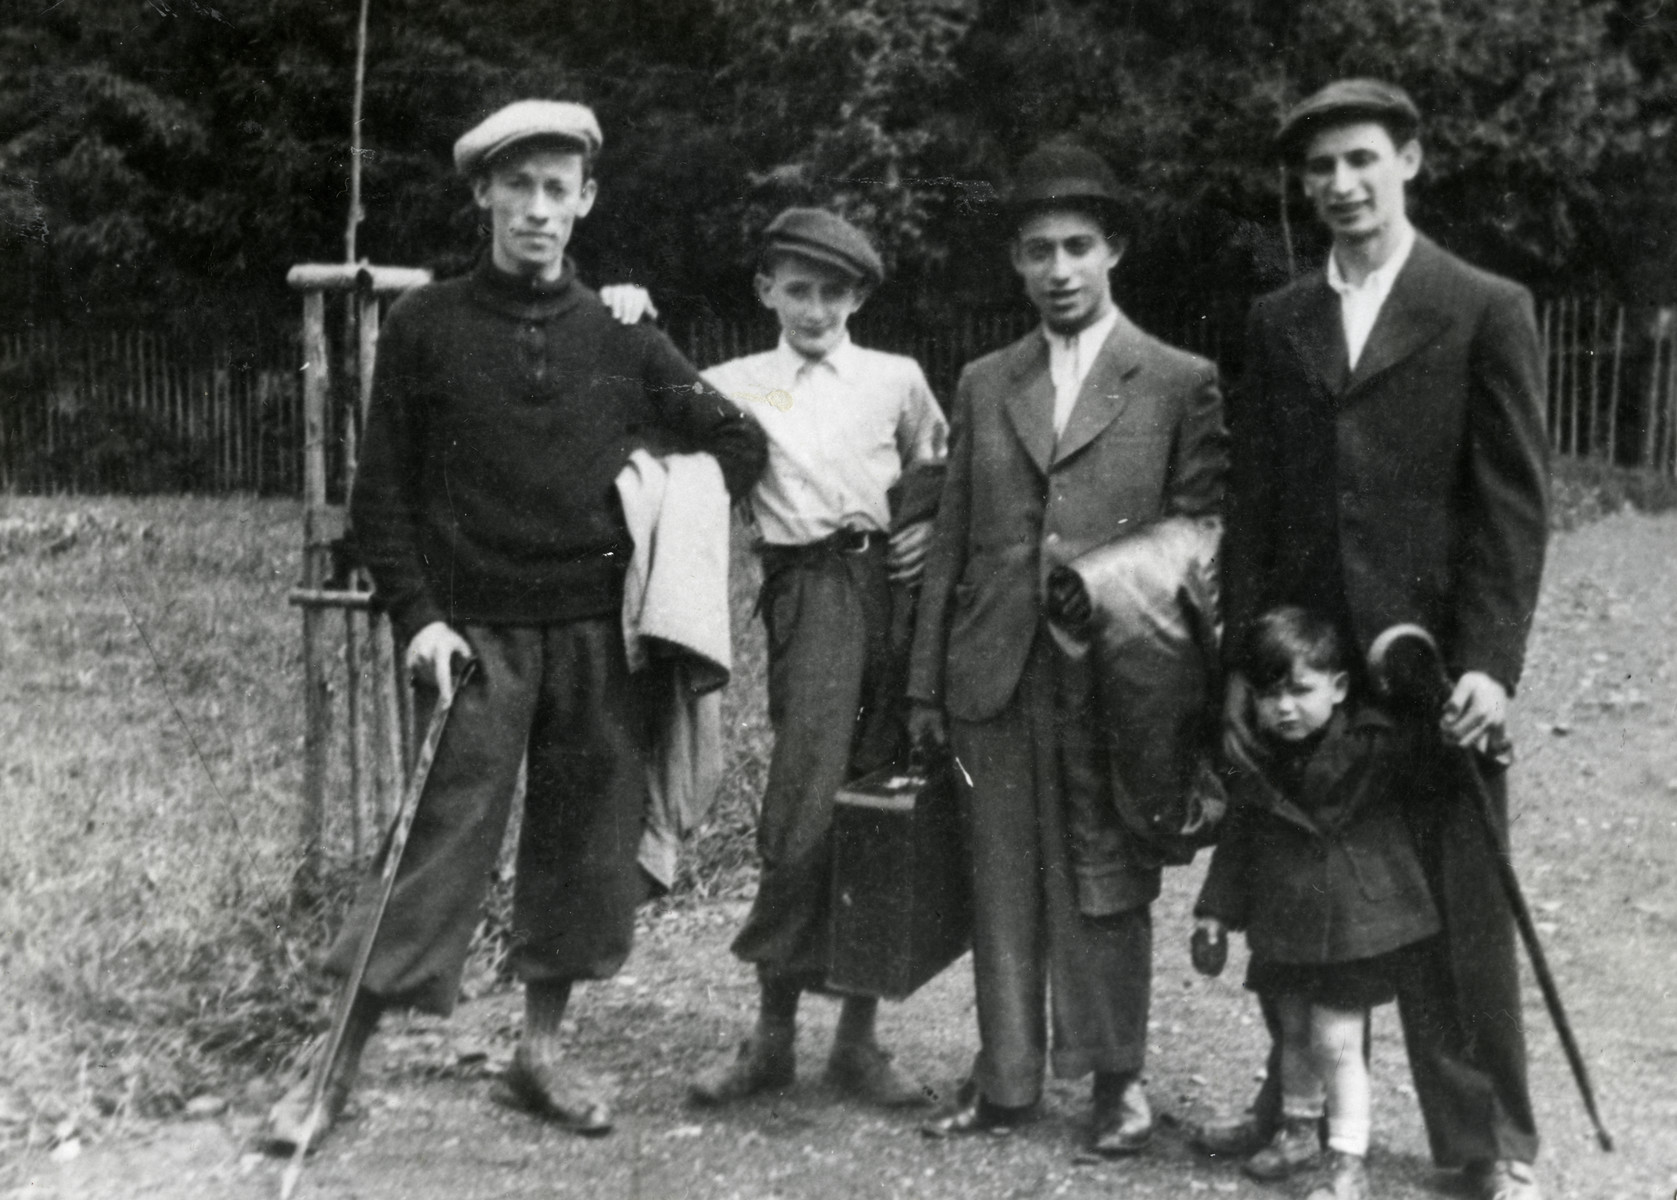 Zvi poses with his friends at a resort near Katowice at a Noar Dati religious summer camp.  Zvi Grundman is pictured first from the right.  Shmuel Joseph is pictured third from the right.